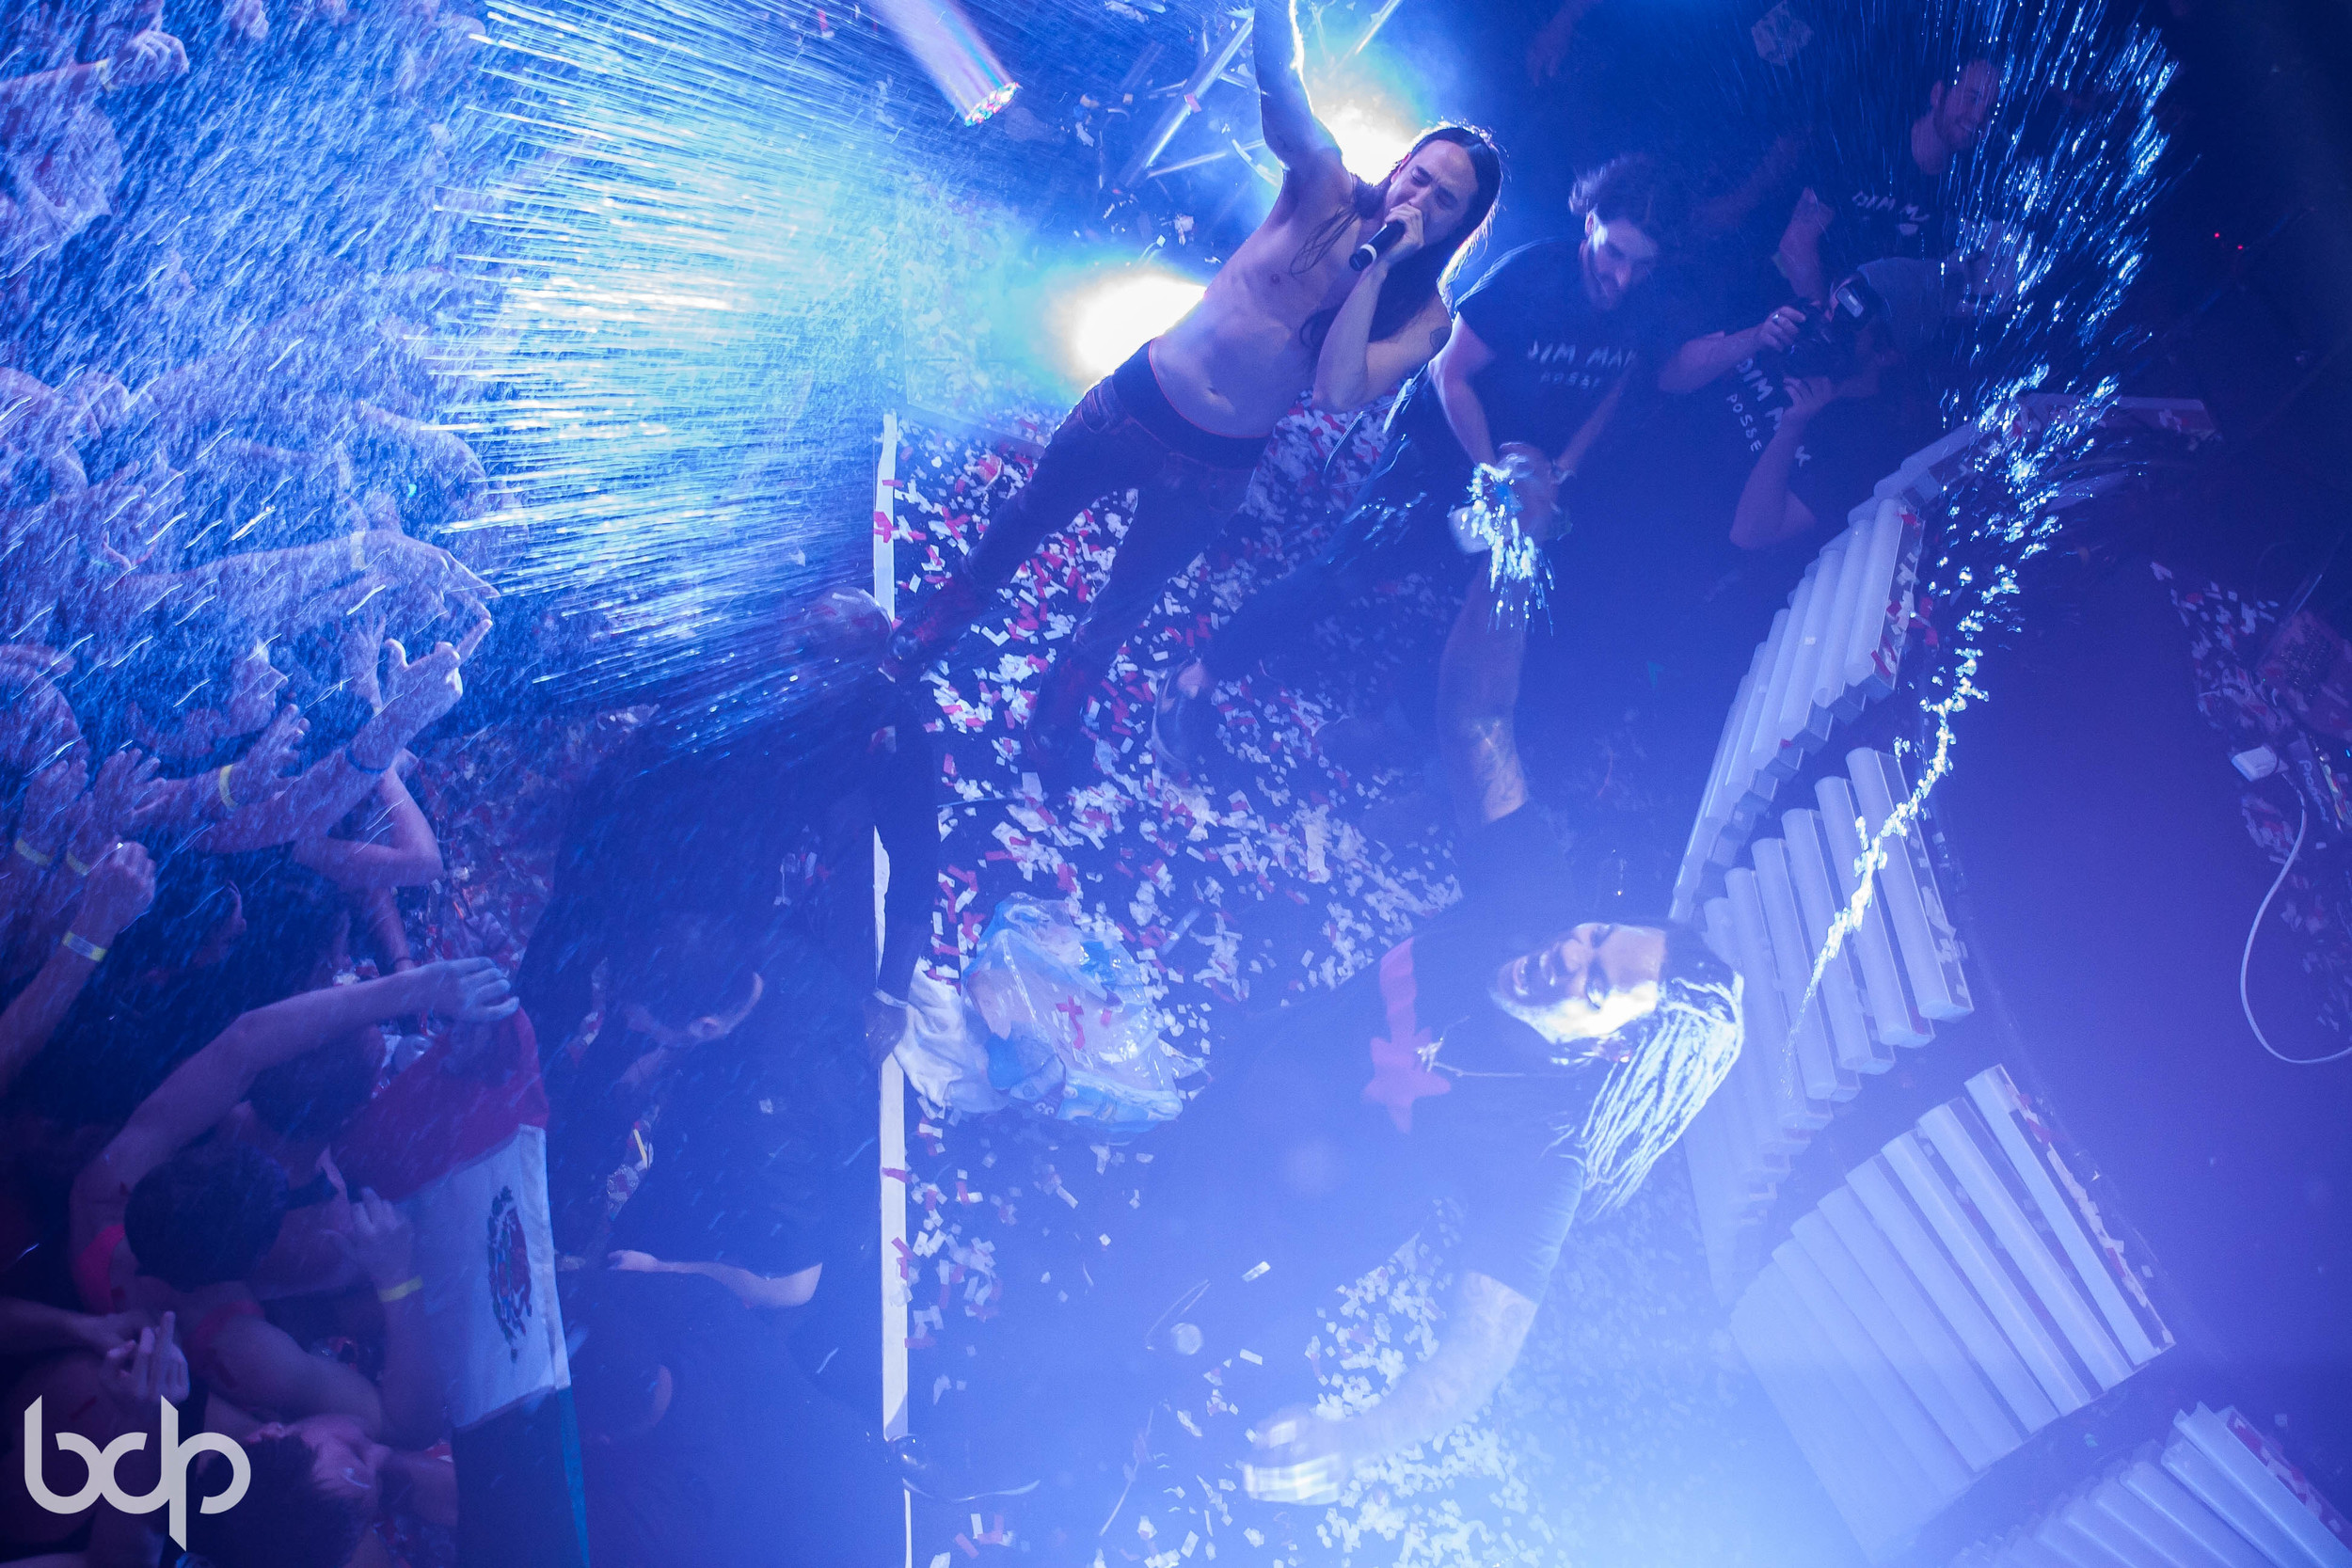 Aokify America Tour at Epic at Epic 110913 BDP-105.jpg